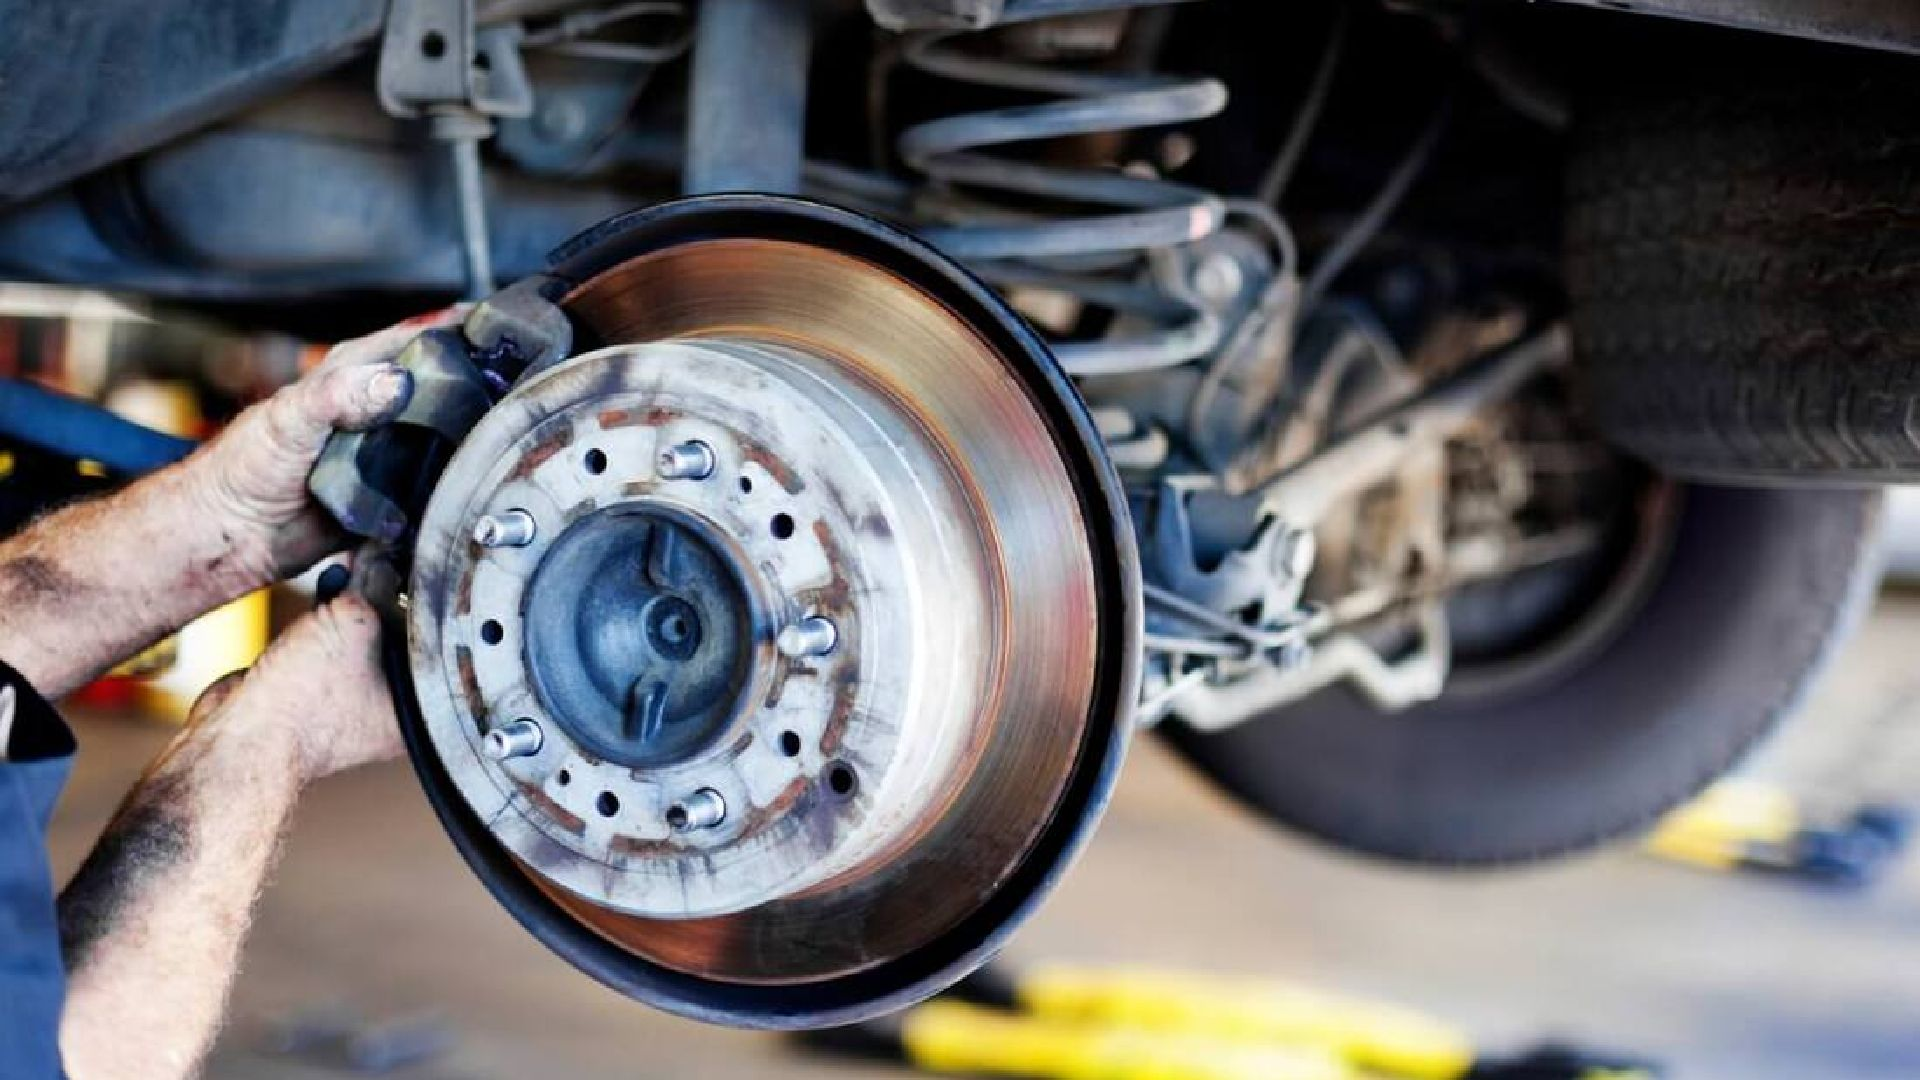 Southbrook Autos offer a great break repair service in Rangiora